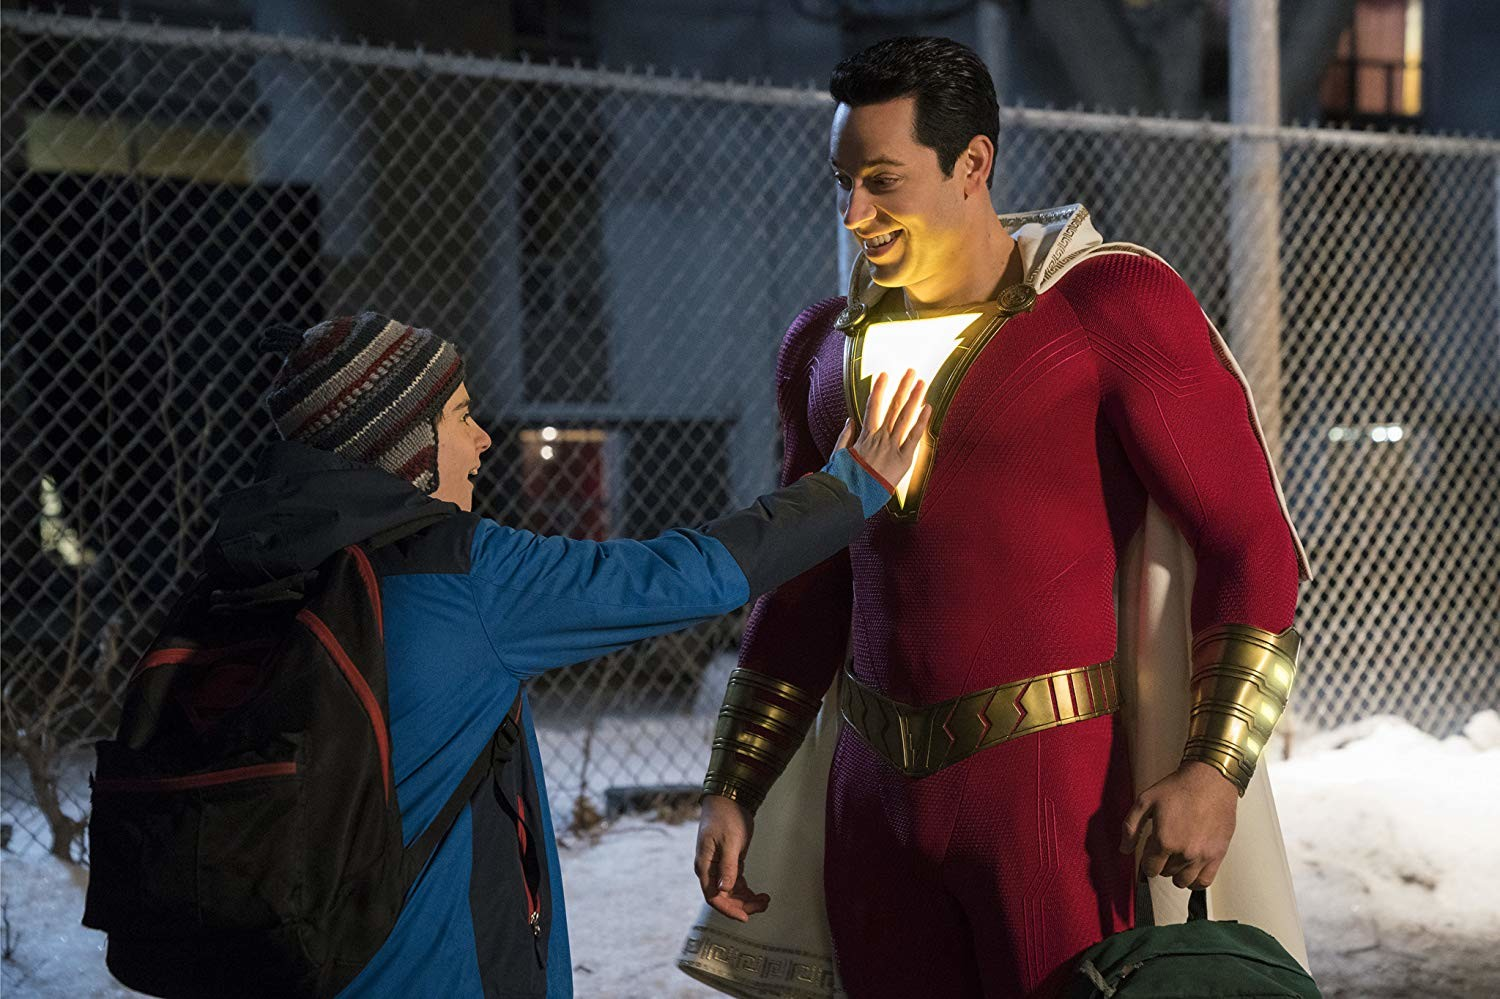 SHAZAM!, Captain Marvel, Zachary Levi, Superman, , Film, DC Comics, Superhero movie, , Warner Bros., shazam jack dylan grazer, Superhero, Fictional character, Superman, Justice league, Scene